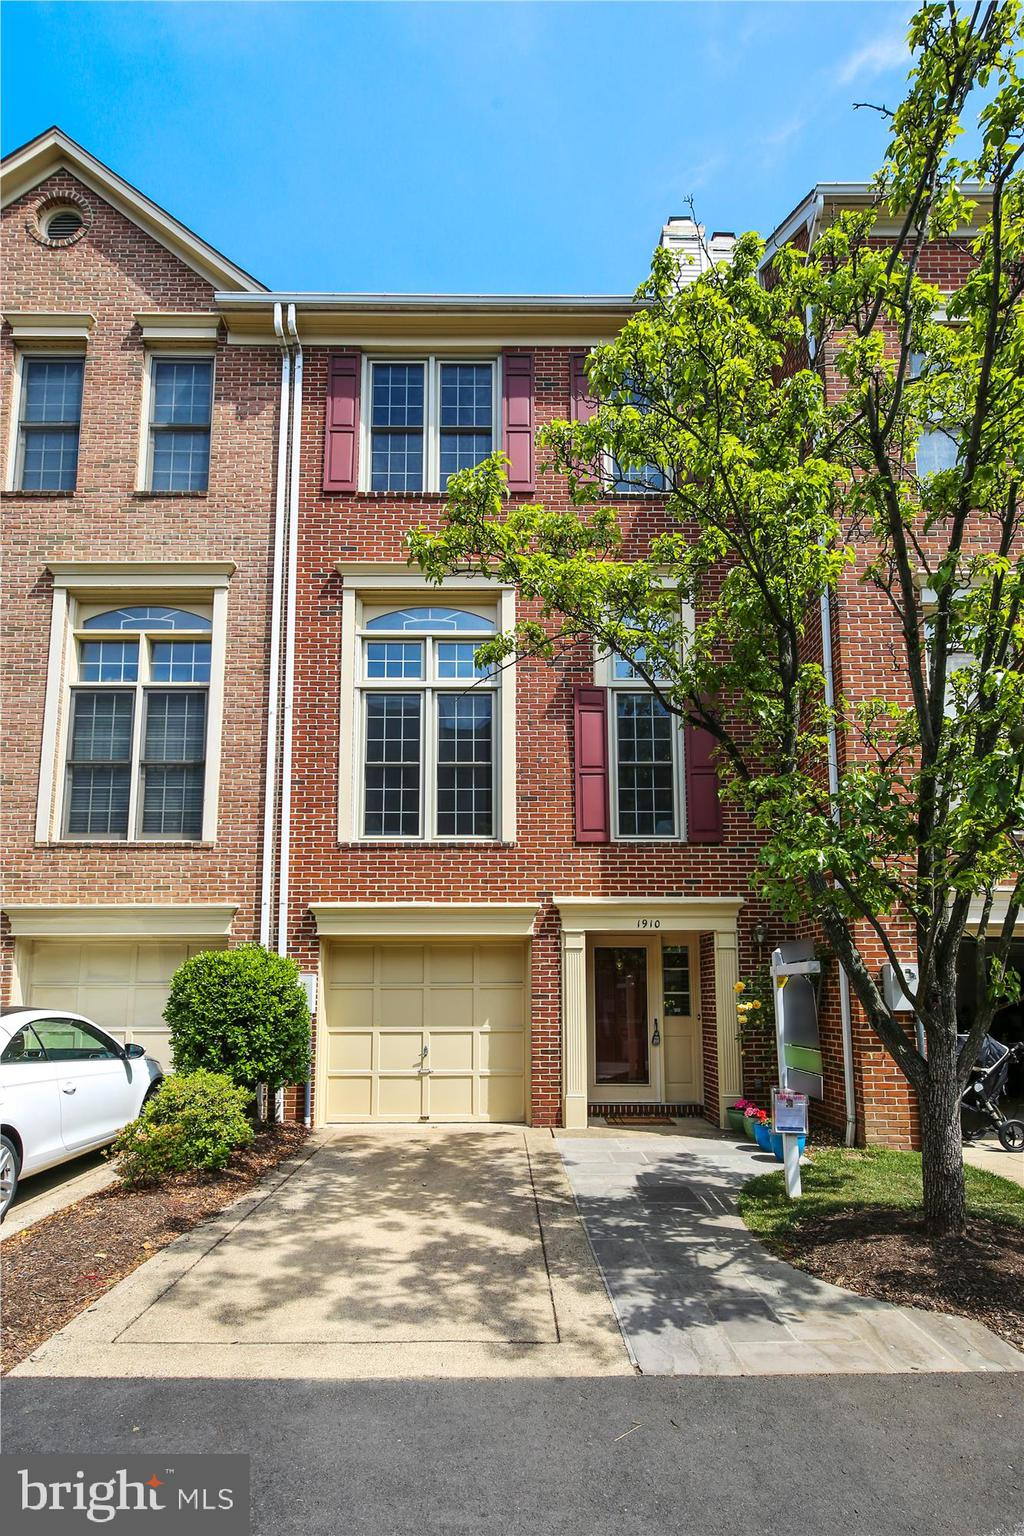 Rarely available Clarendon/Lyon Village townhouse in the Lyongate community that's been renovated from the top to the bottom! The tile foyer includes a coat closet, entrance to your 1-car garage, a den with closet, laundry, and utilities. Upstairs you'll find Brazilian Cherry hardwood floors throughout. The family room has 12-foot ceilings and is flooded with natural light from the tall windows. The family room has a wood-burning fireplace surrounded by built-in shelves. The renovated kitchen includes white cabinets, Quartz countertop, stainless steel appliances, subway tile backsplash, cork flooring, eat-in area with extra cabinets, chalkboard wall, and sliding glass door to a fenced-in slate patio. Upstairs you'll find a unique 2-story primary bedroom. The first level is the sleeping area with closet, which leads to a short staircase up to your renovated bathroom with large walk-in shower with glass door, dual vanity countertop, water closet, and large walk-in closet with Elfa shelving and access to the attic eave. The other 2 bedrooms share a hall bath with tub/shower. Located just 1 block to the Lyon Village shopping center (including Italian Store, Starbucks, and Giant), 1 block to the Lyon Village sprayground, and walkable to two metro stations: Courthouse (0.5 miles) and Clarendon (0.6 miles). Owners also enjoy easy commute access to Georgetown, I-66, and the GW Parkway.  A long list of updates includes: Fence – 2010, Elfa in Primary Closet – 2010, Roof – 2011, HVAC – 2012, Primary Bath – 2013, All Windows and Sliding Glass Door – 2015, Guest Bedroom Elfa Shelving – 2015, Kitchen – 2018, Slate Patio & Front Walkway – 2019. The HOA has 4 guest spots available for use or street parking on N Daniel. HOA includes outdoor landscaping, snow removal, and funds for long-term projects.